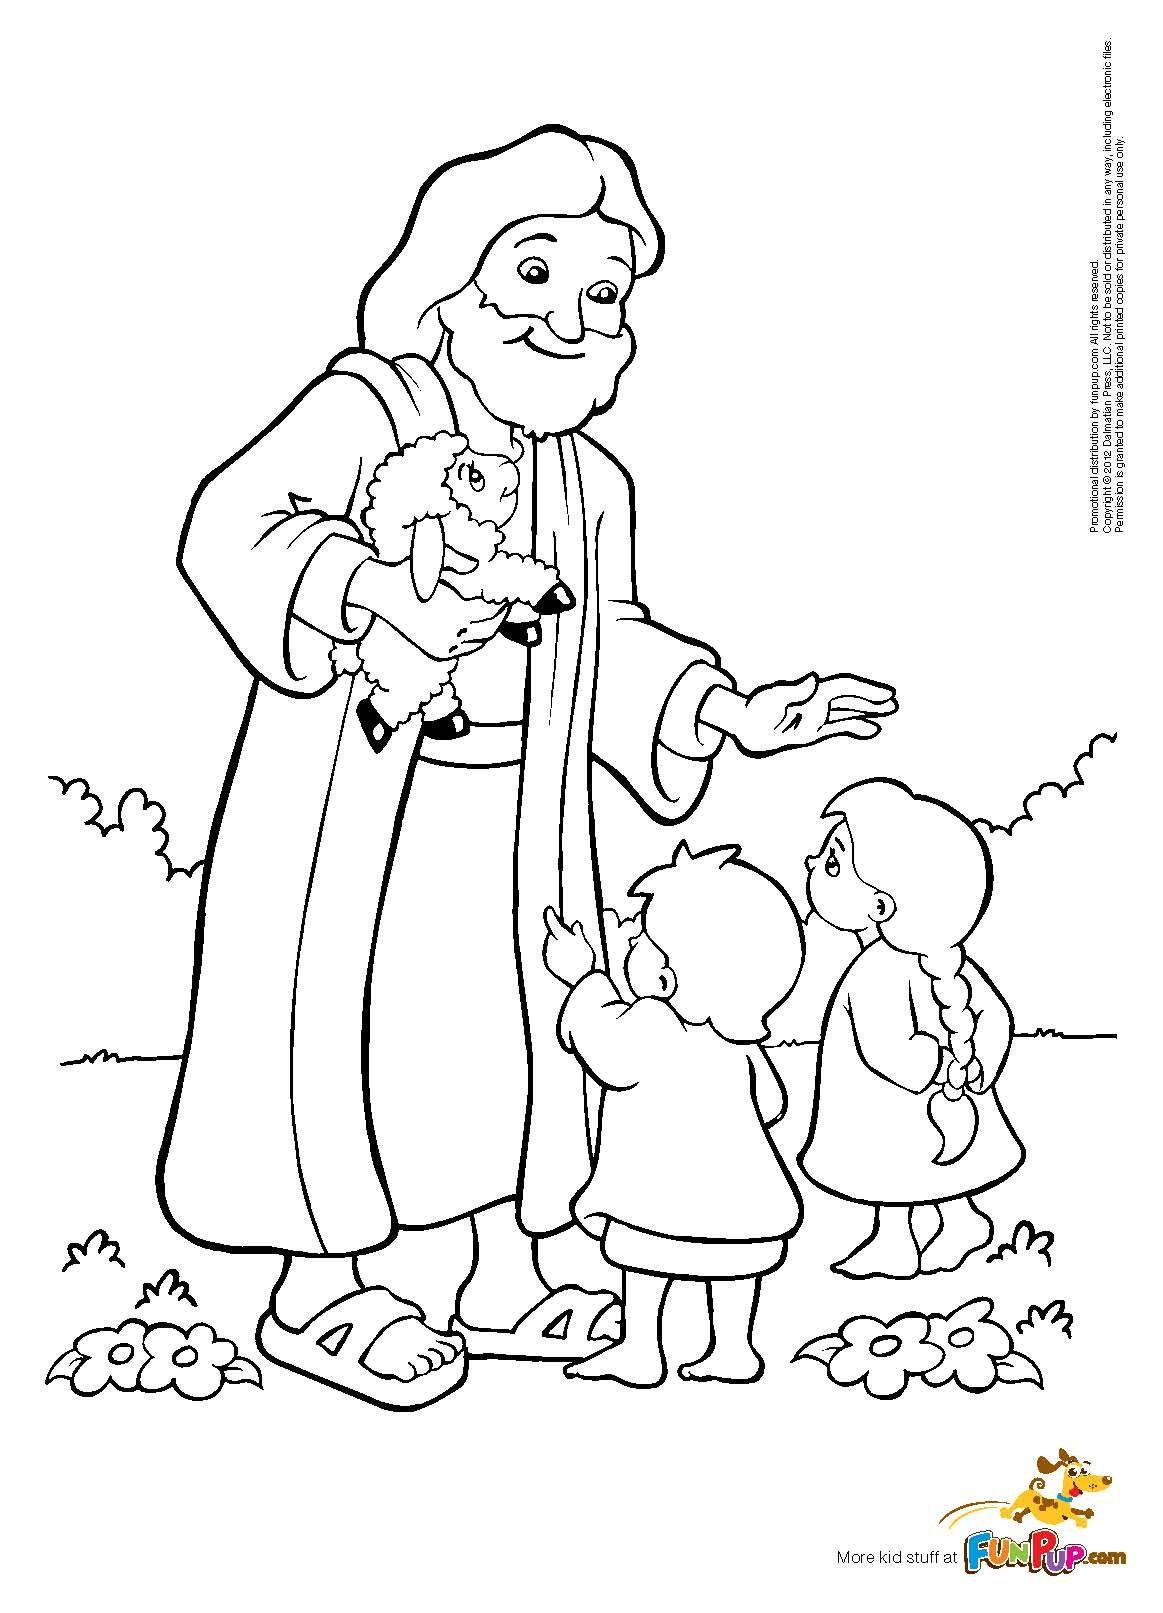 Happy Birthday Jesus Coloring Pages 08 Religion Coloring Page Jesus